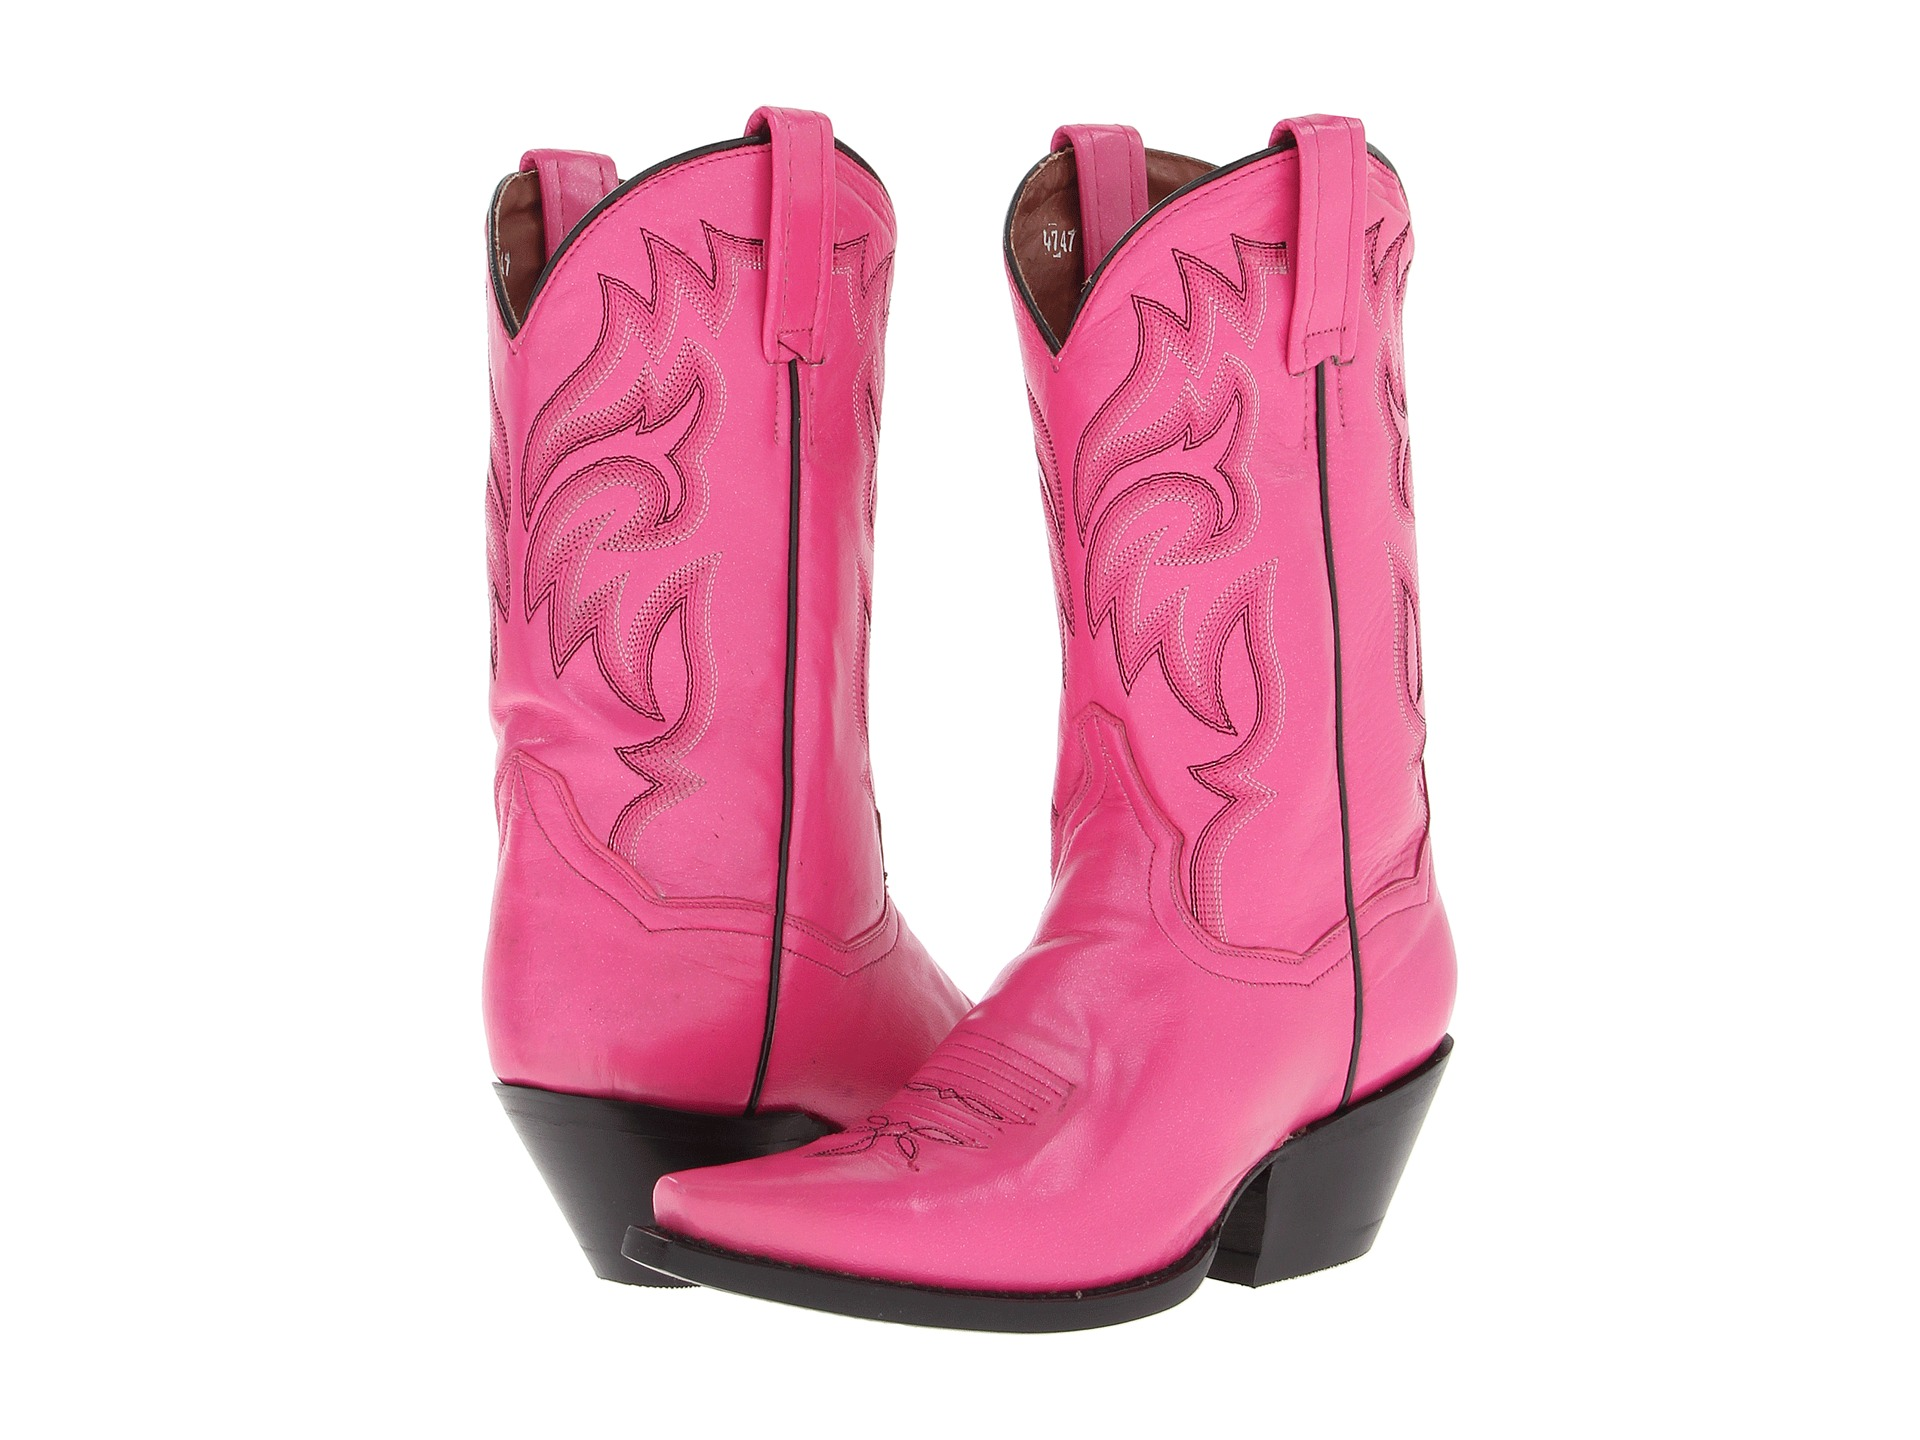 Boots, Cowboy Boots, Pink | Shipped Free at Zappos